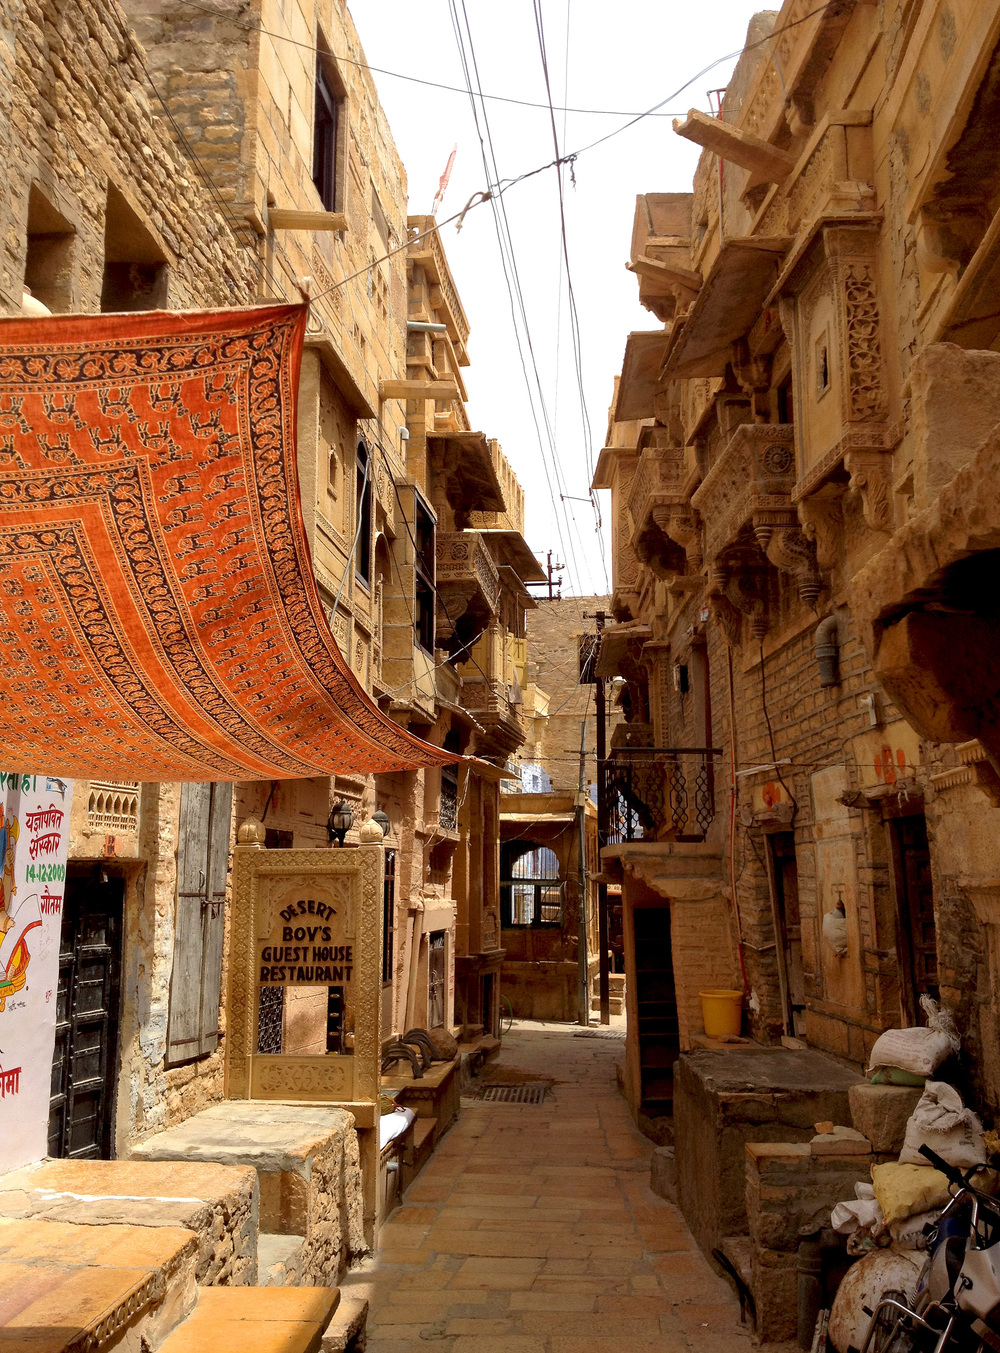 Alley in Jaisalmer, India